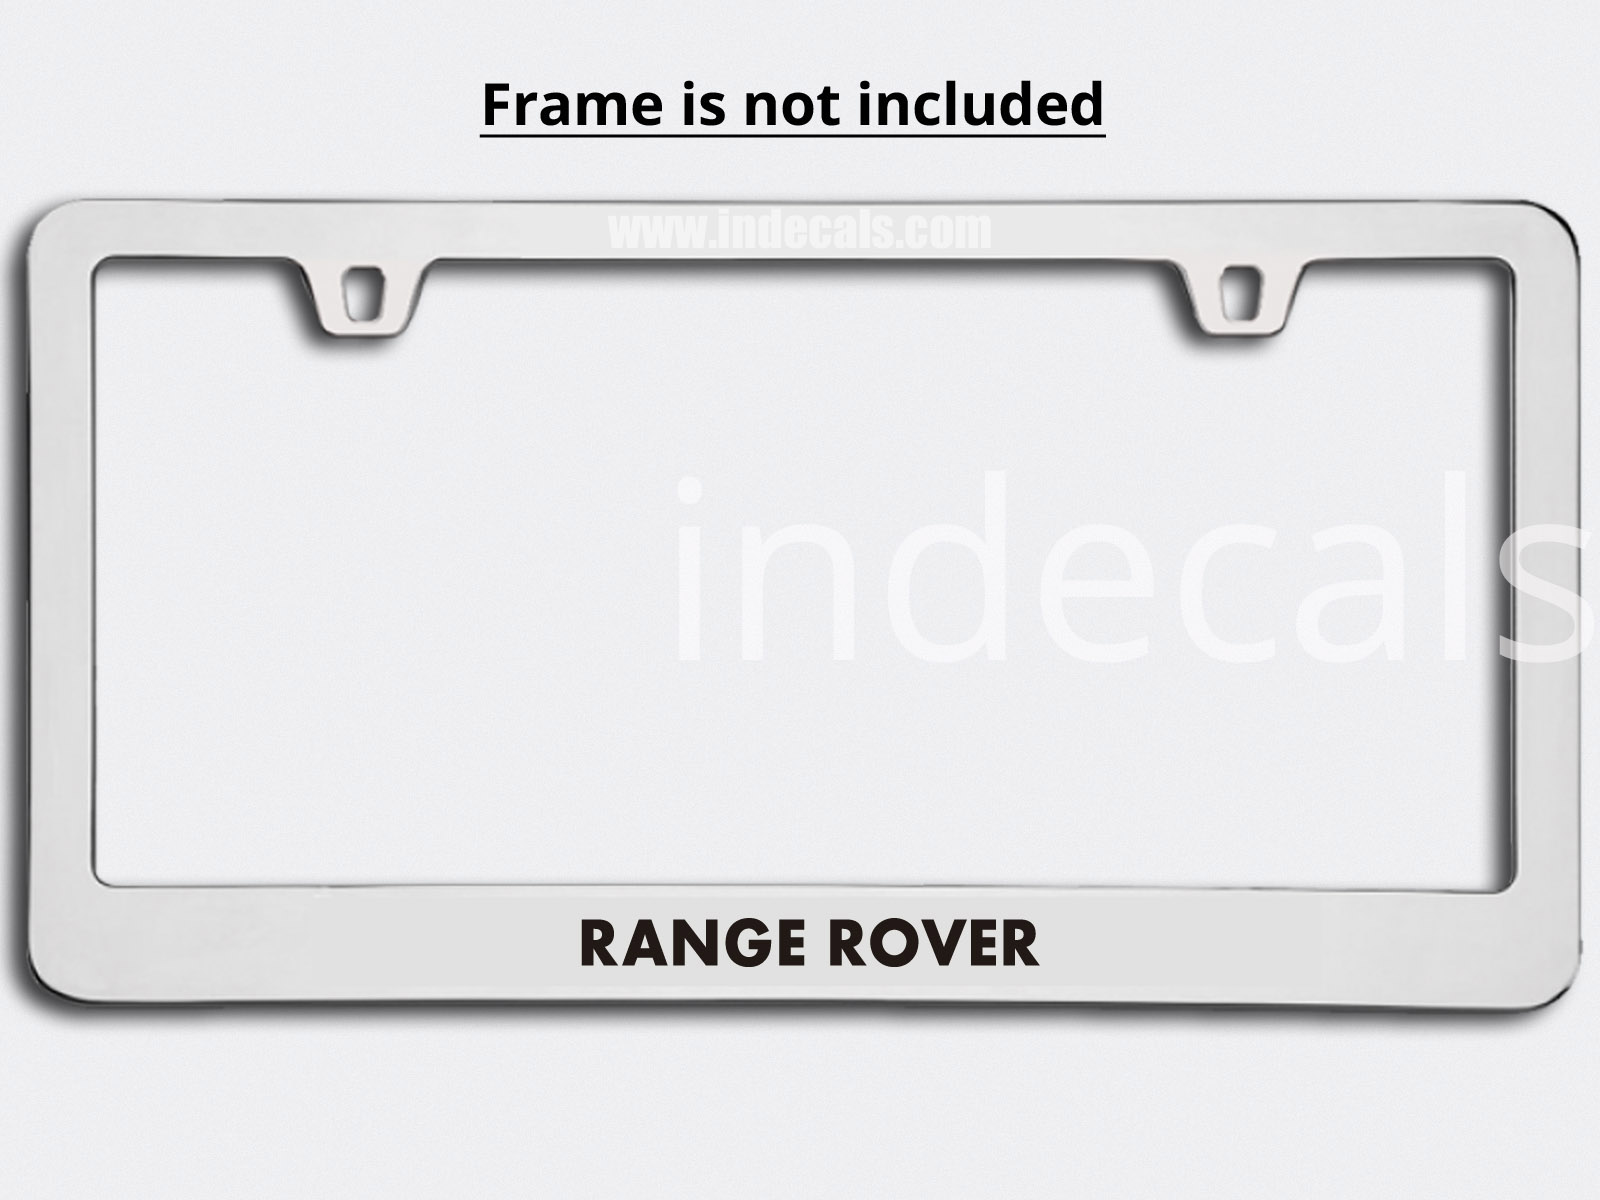 3 x Range Rover Stickers for Plate Frame - Black